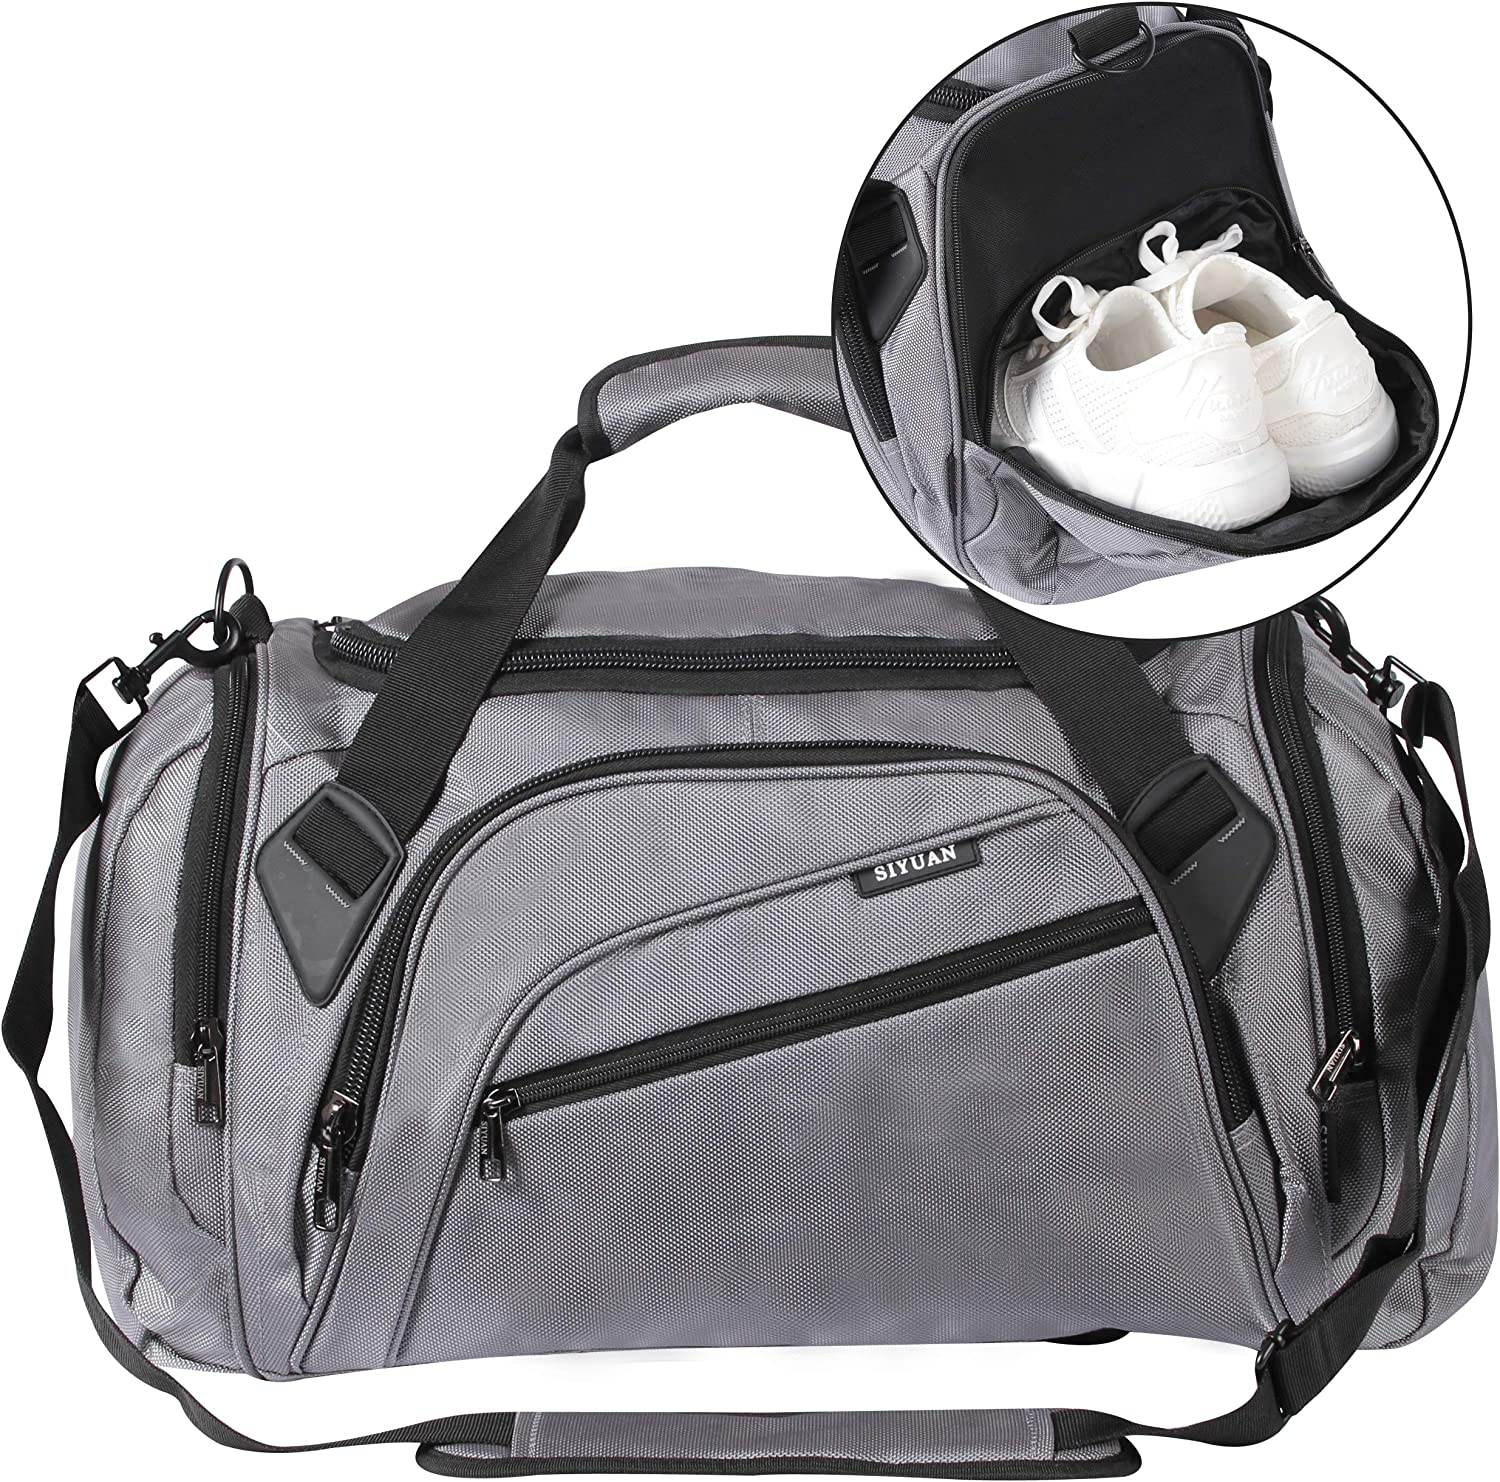 Free shipping New SIYUAN Sports Duffel Bag Water Max 41% OFF Gym with S Athletic Resistant